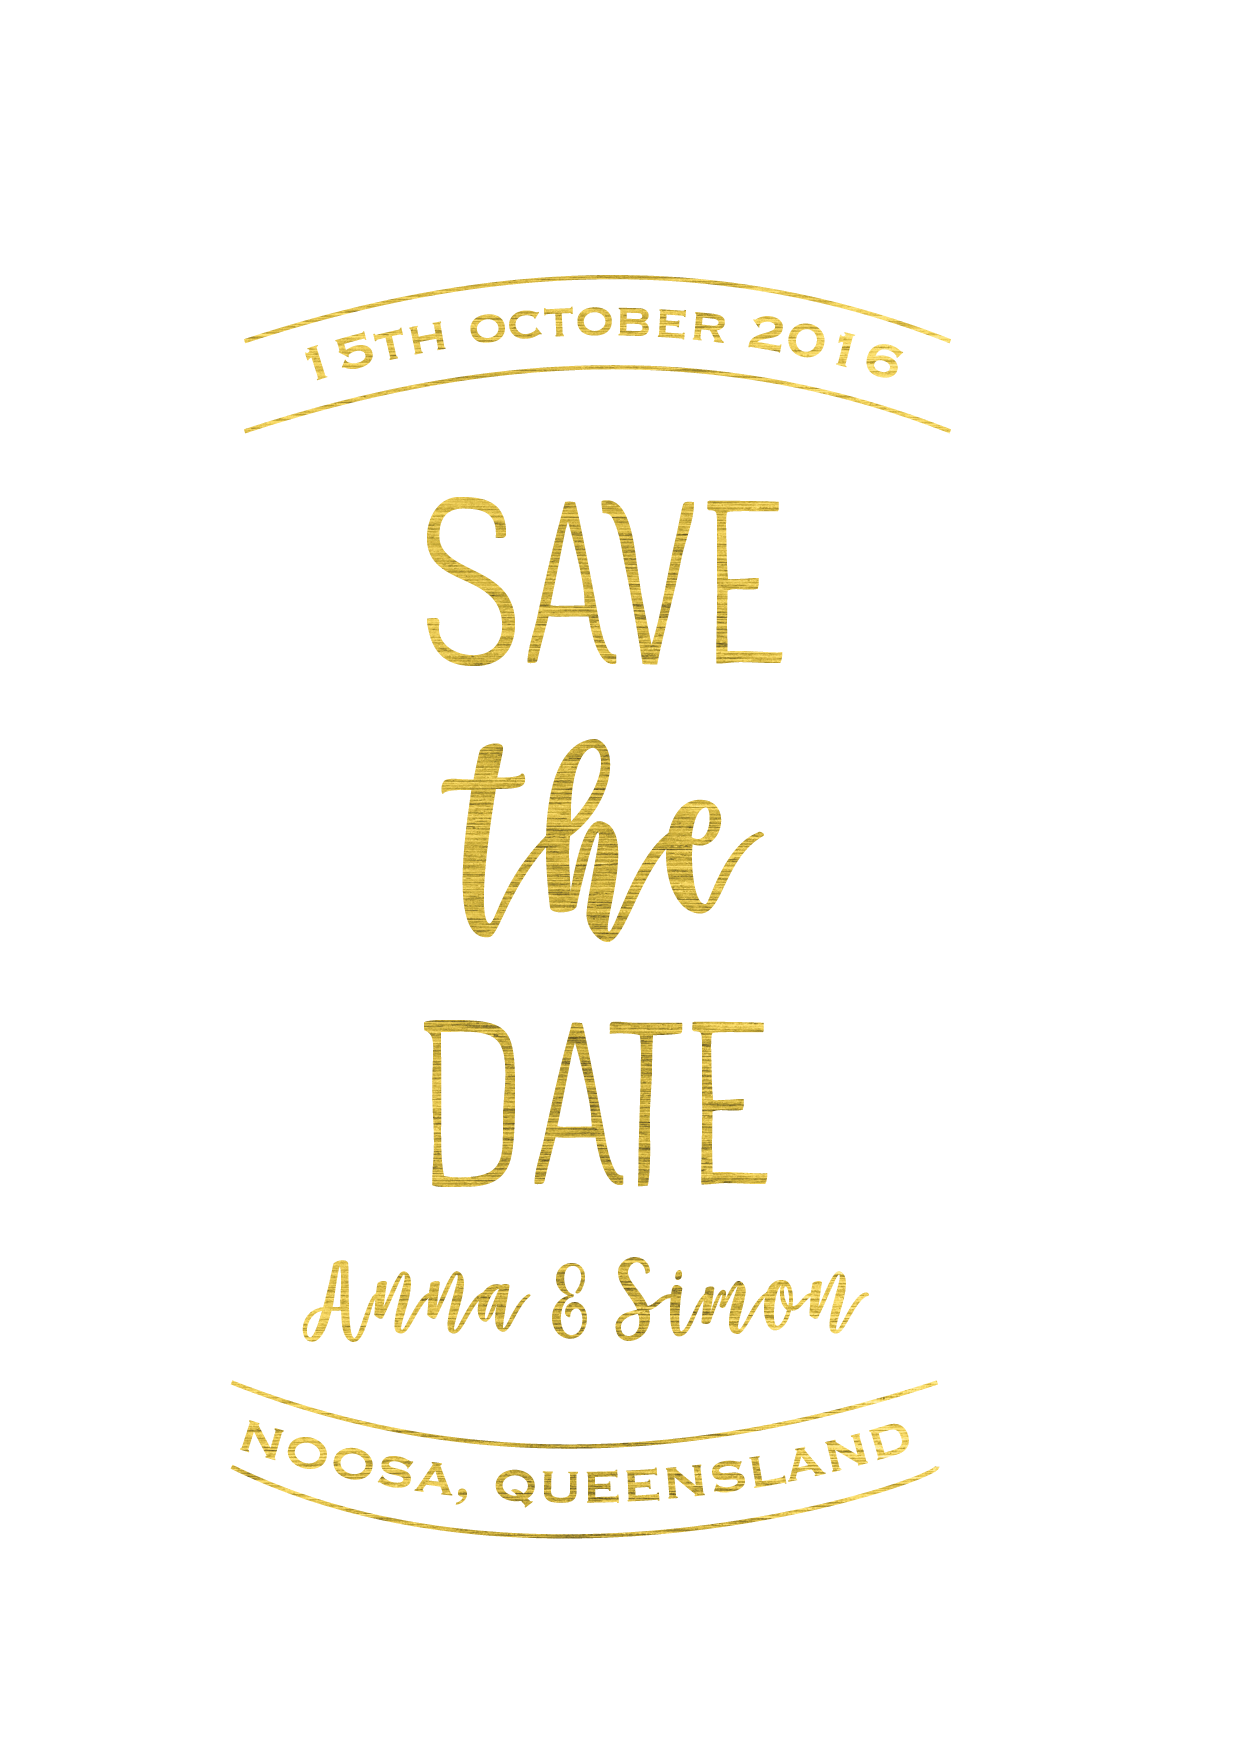 Wedding Save the Date Invitations 'CLASSIC GOLD'.